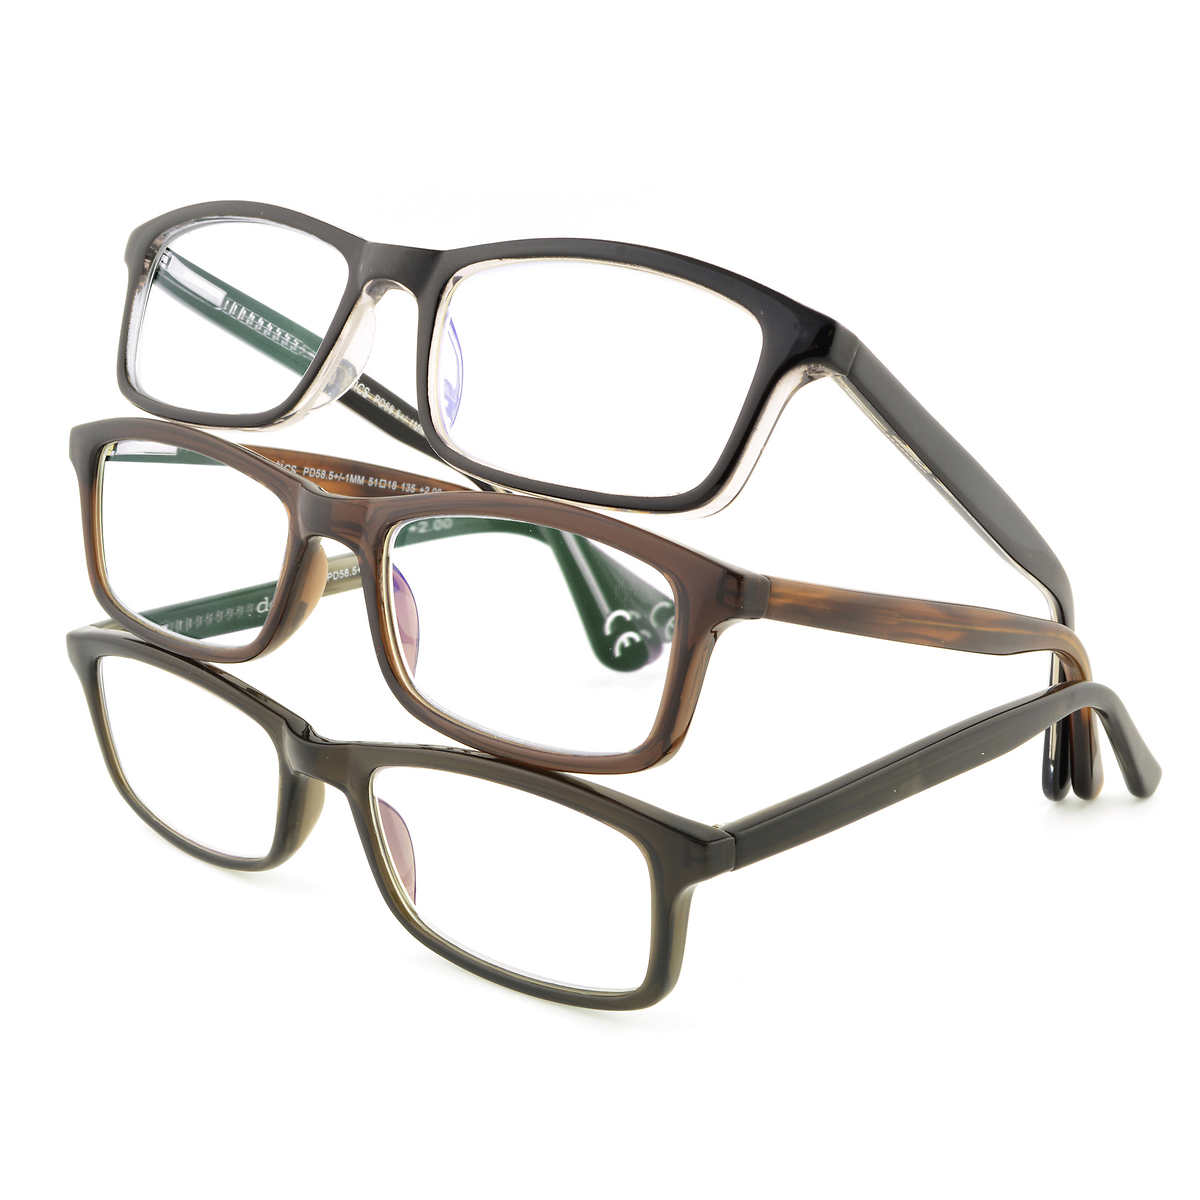 design optics by foster grant hard plastic 3 pack reading glasses